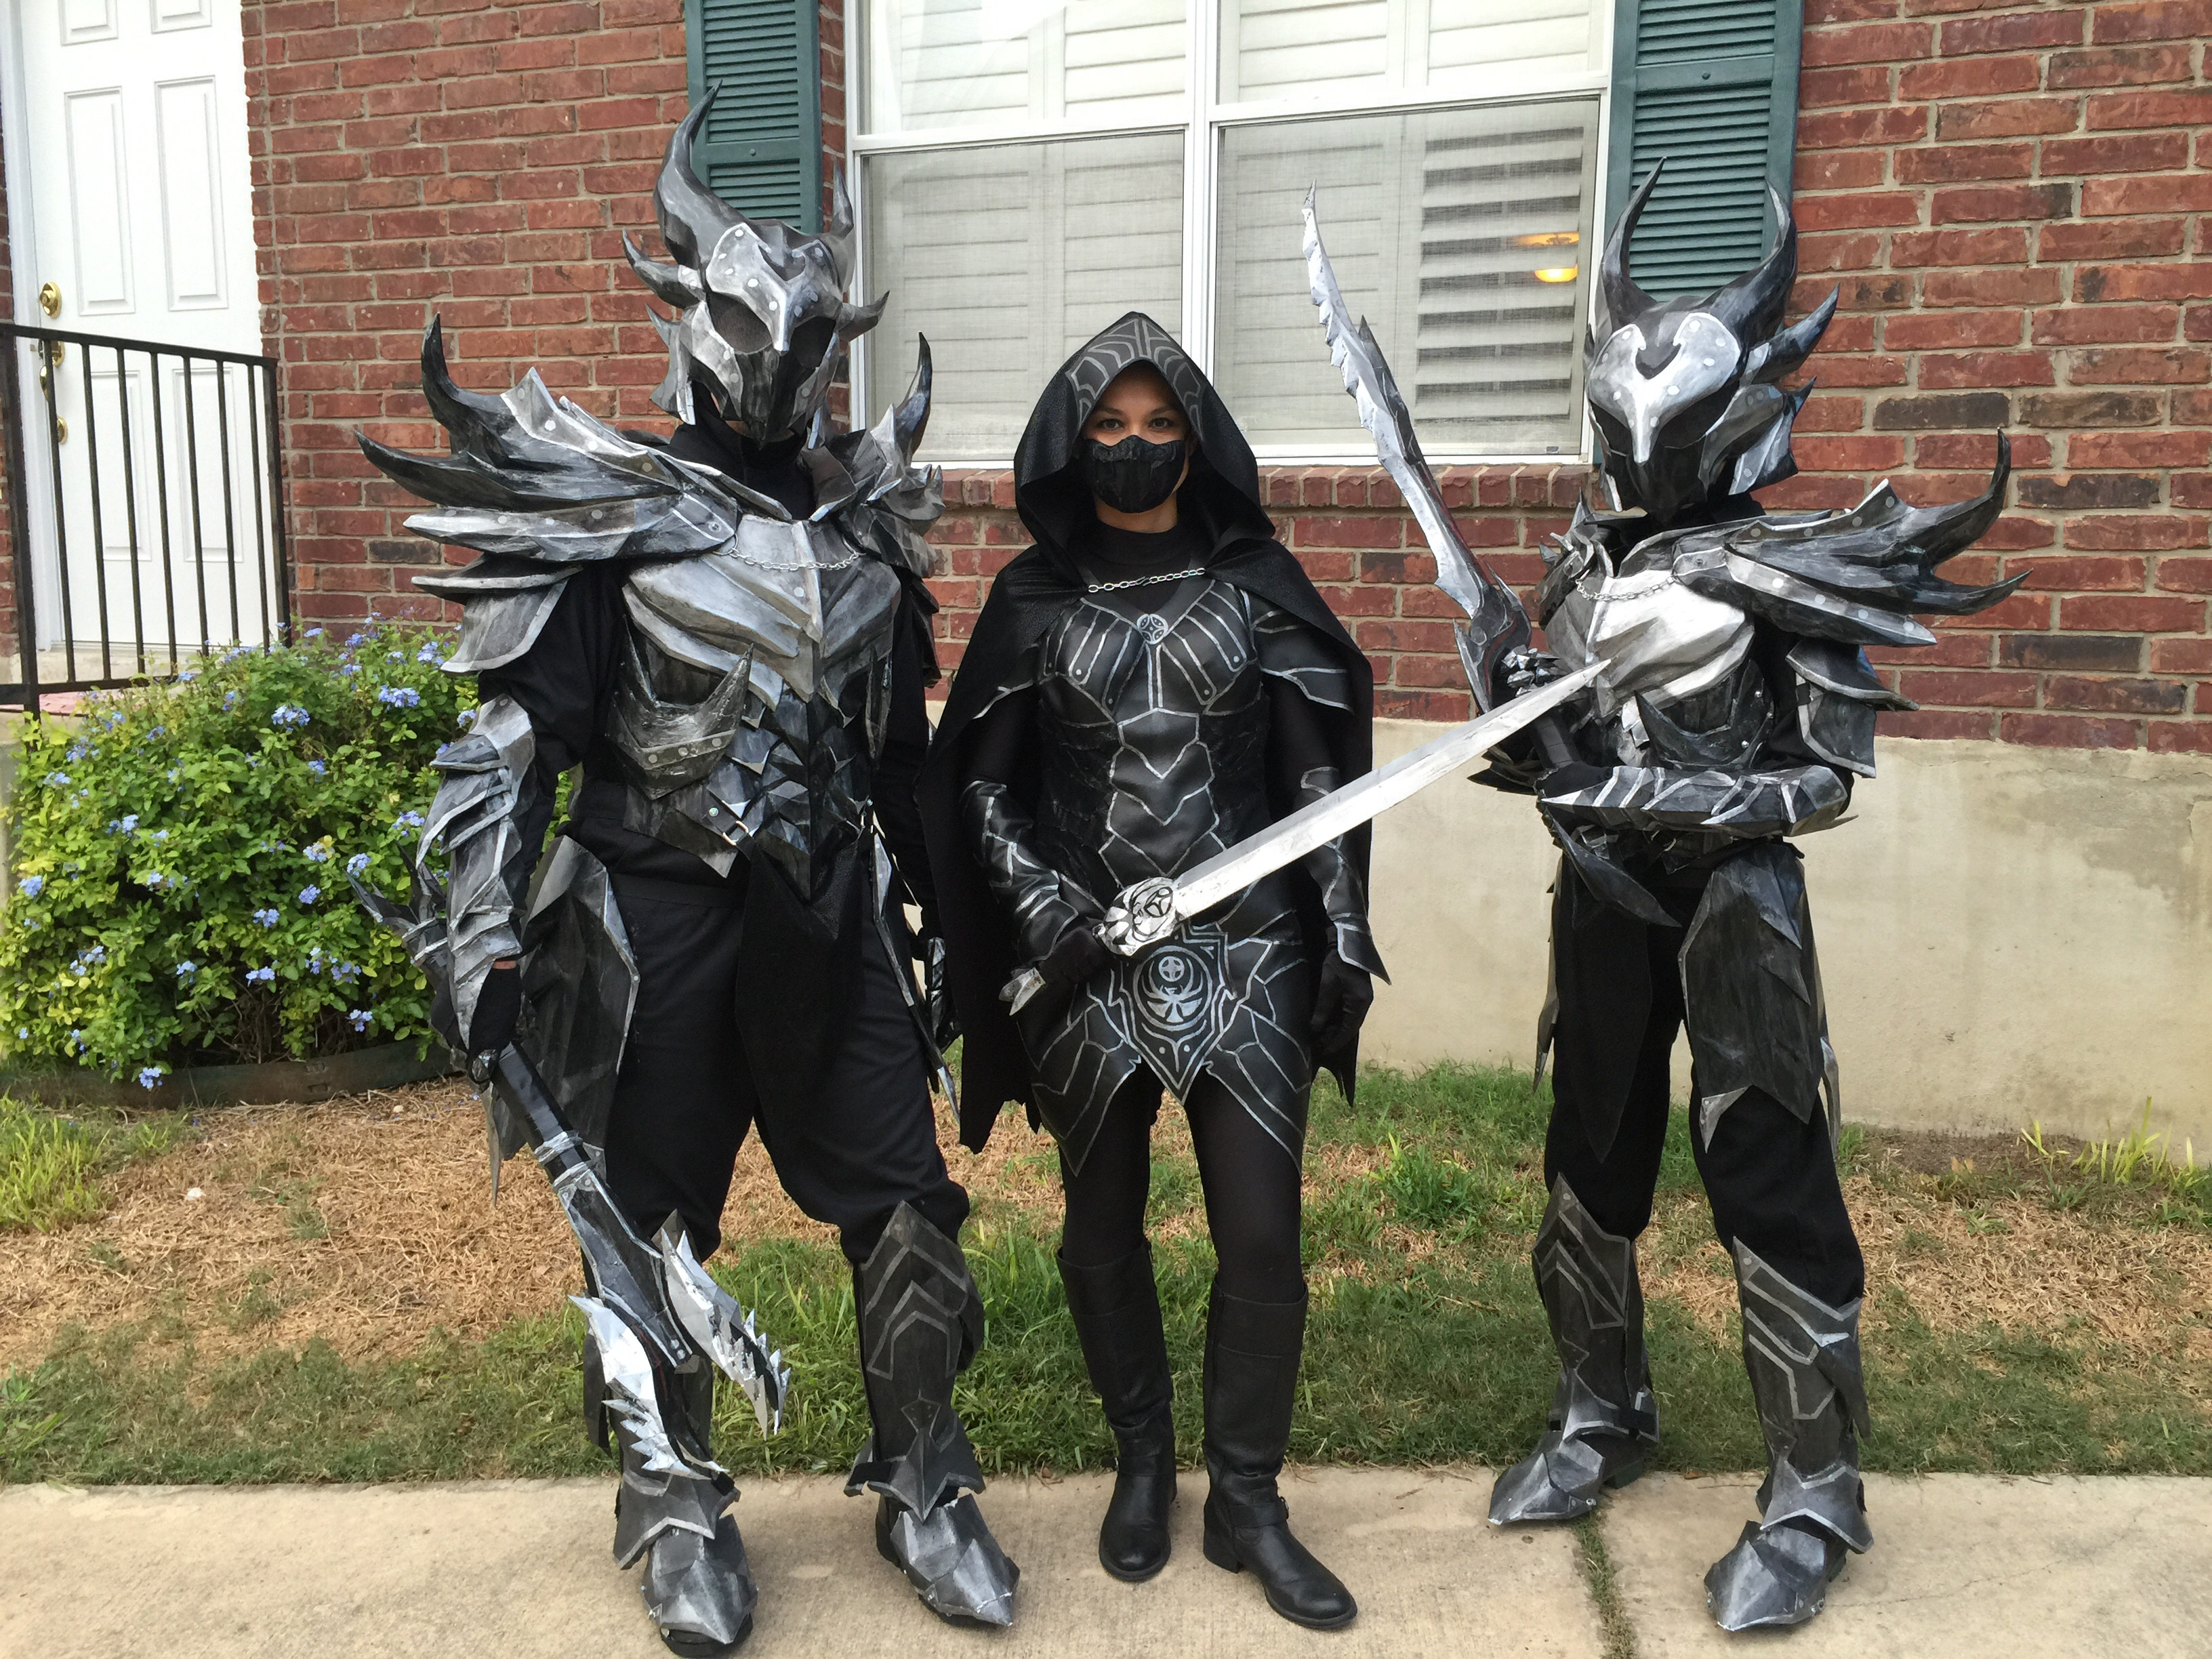 33 - The Very Best Costumes From Halloween 2015